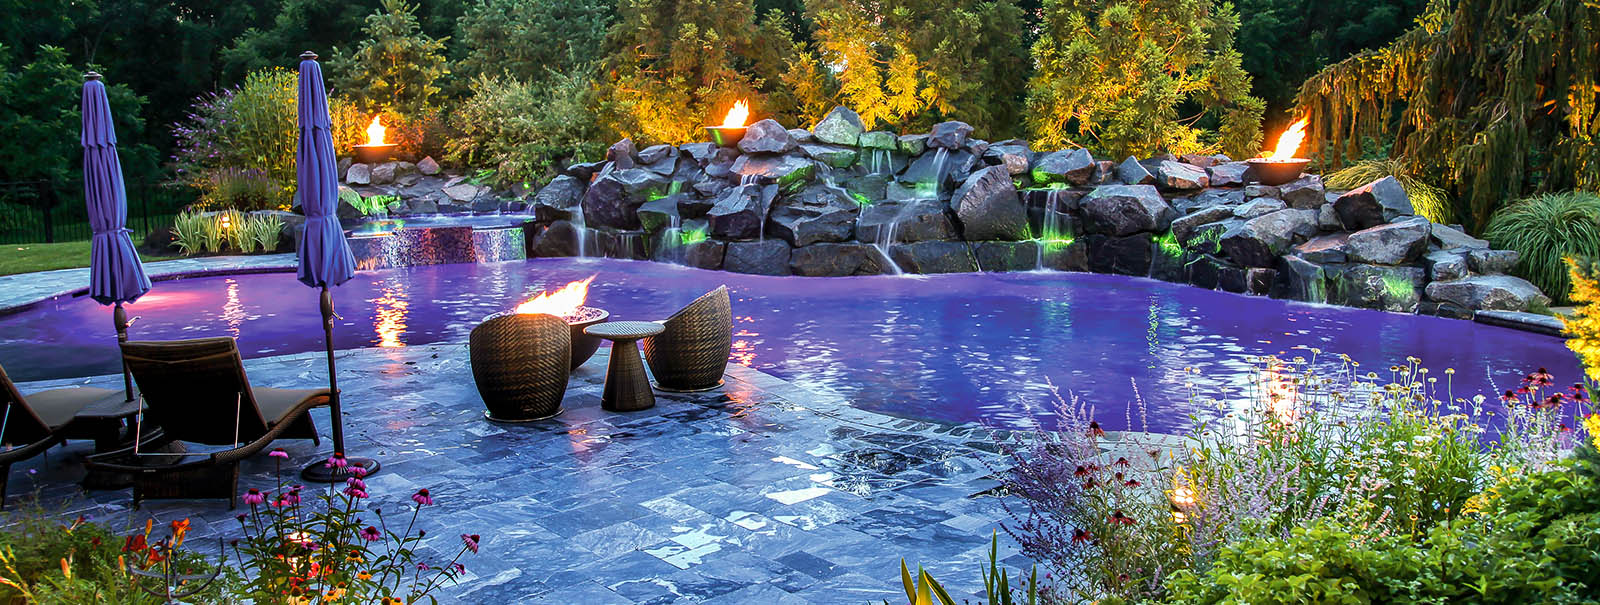 Morganville New Jersey Custom Swimming Pool Builders│Blue Haven Pools